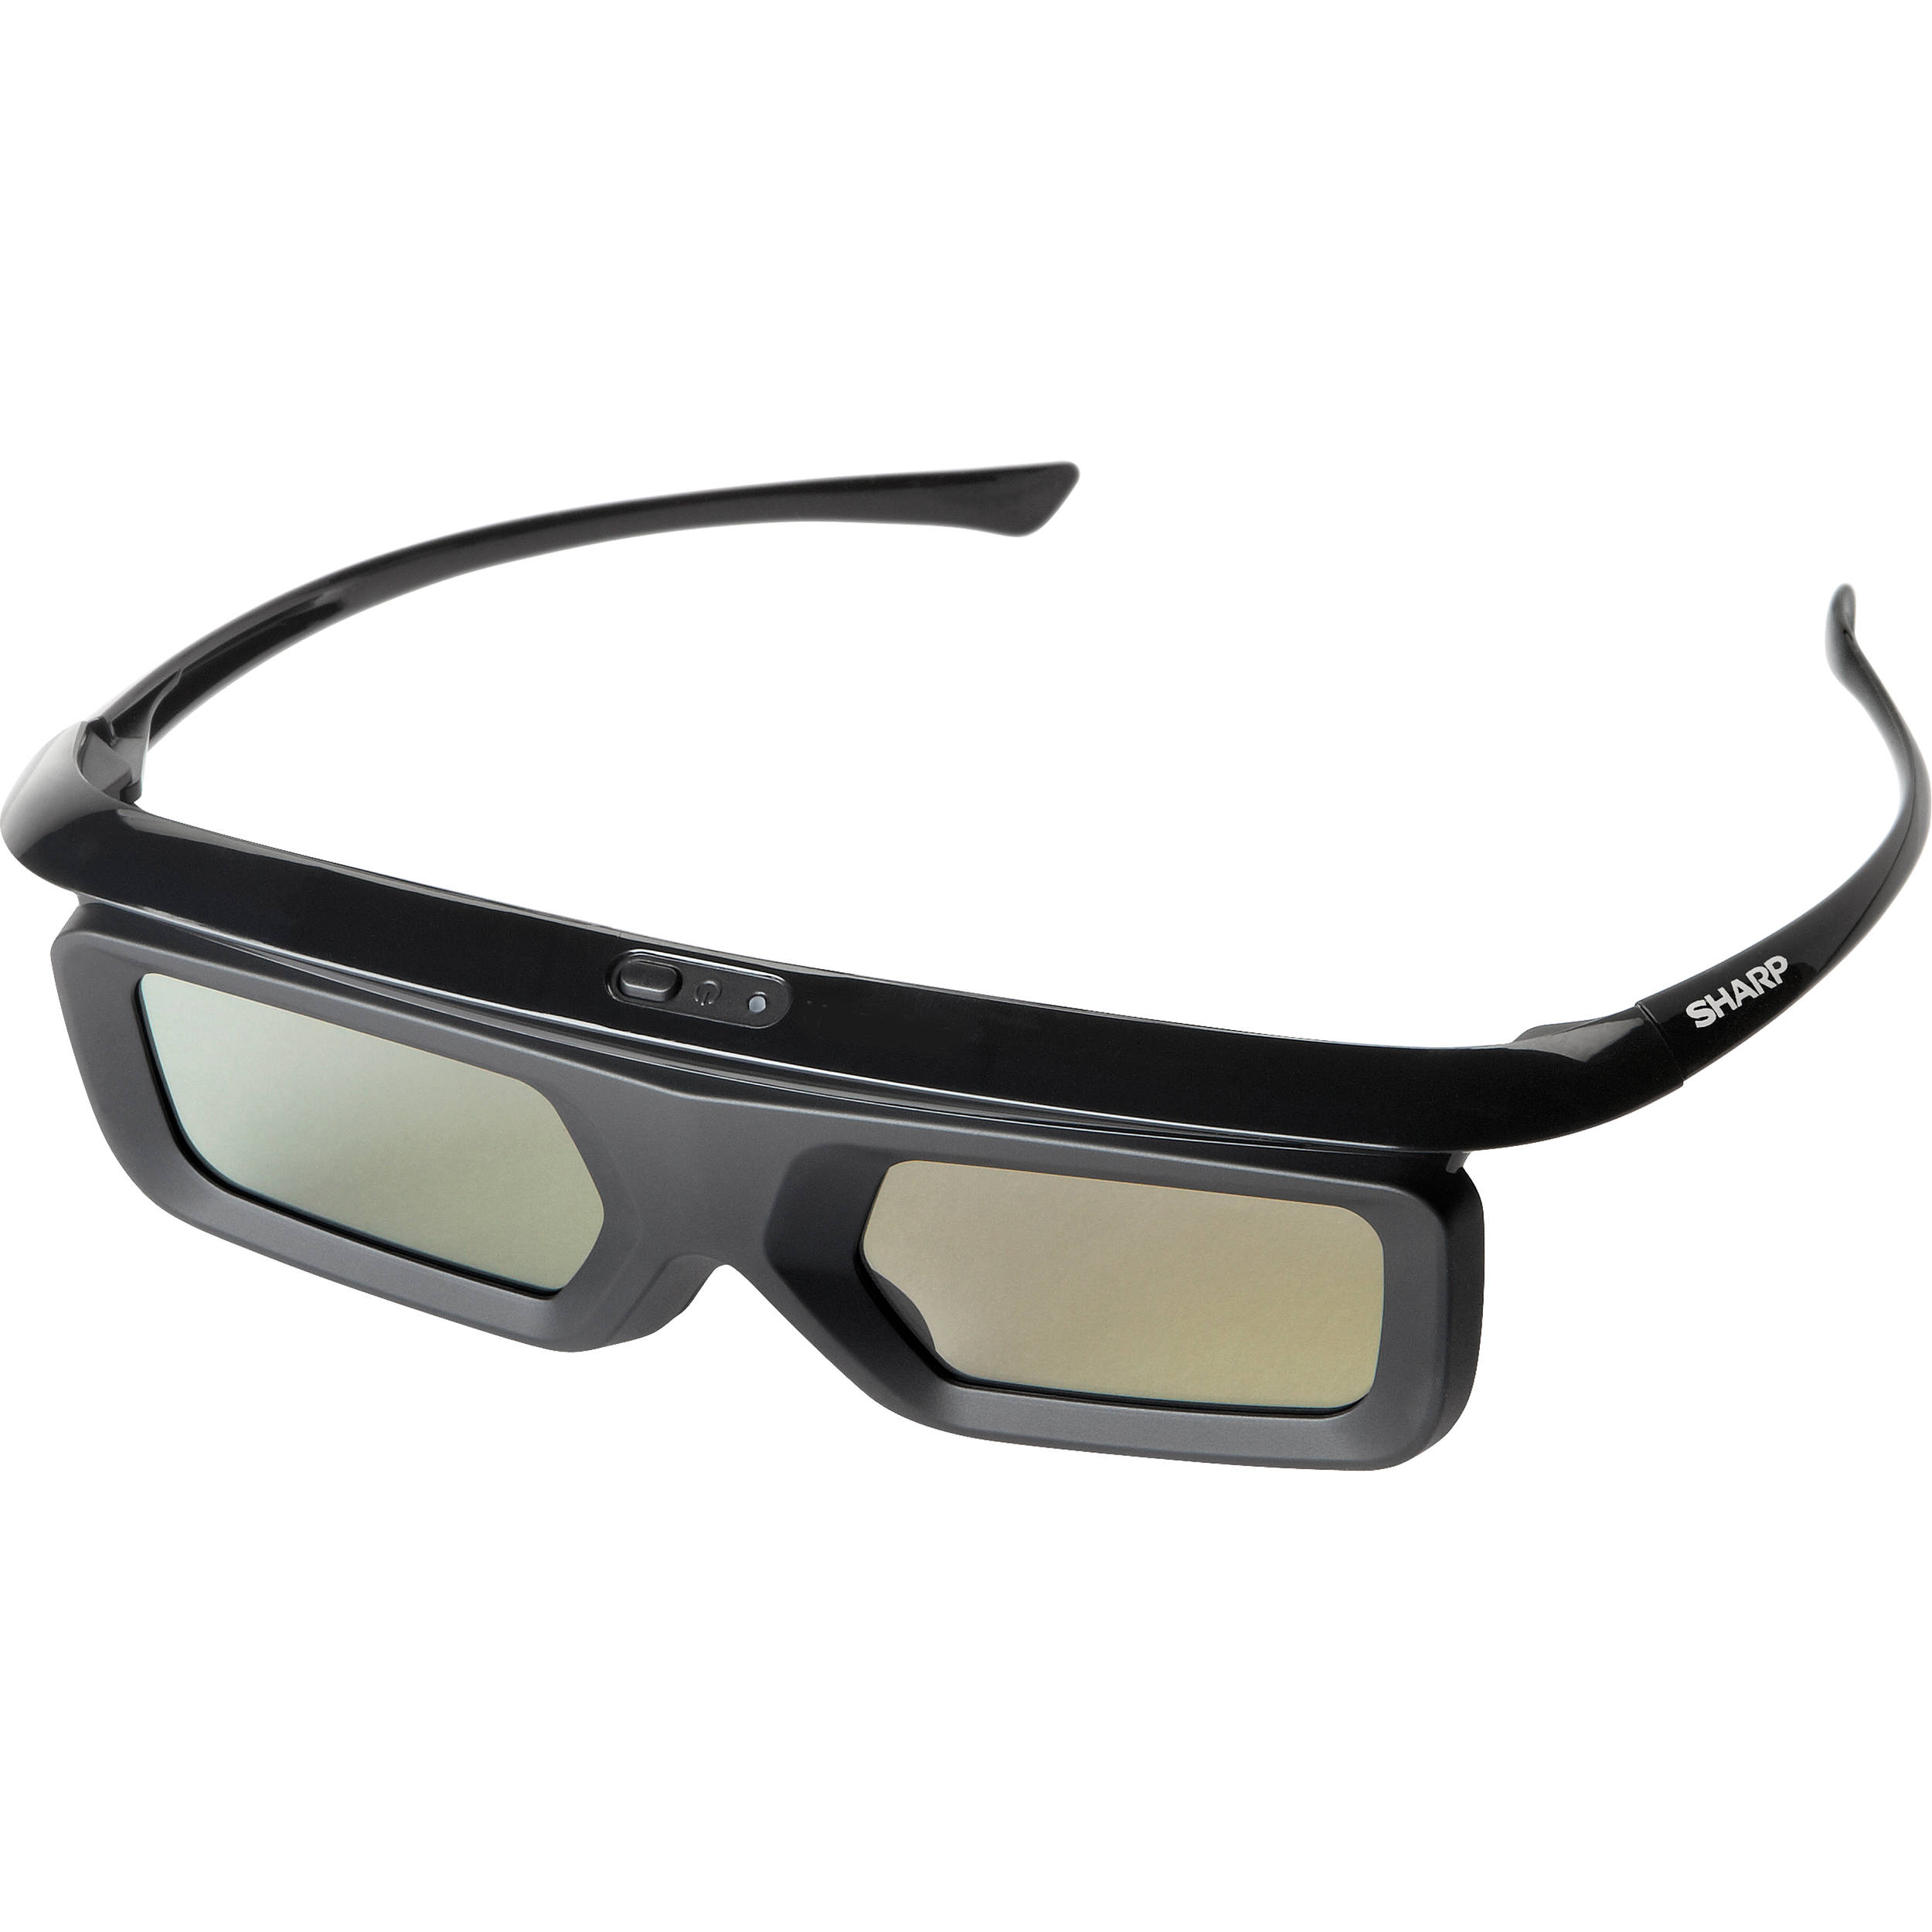 Sharp Active 3D Glasses AN-3DG40 B&H Photo Video